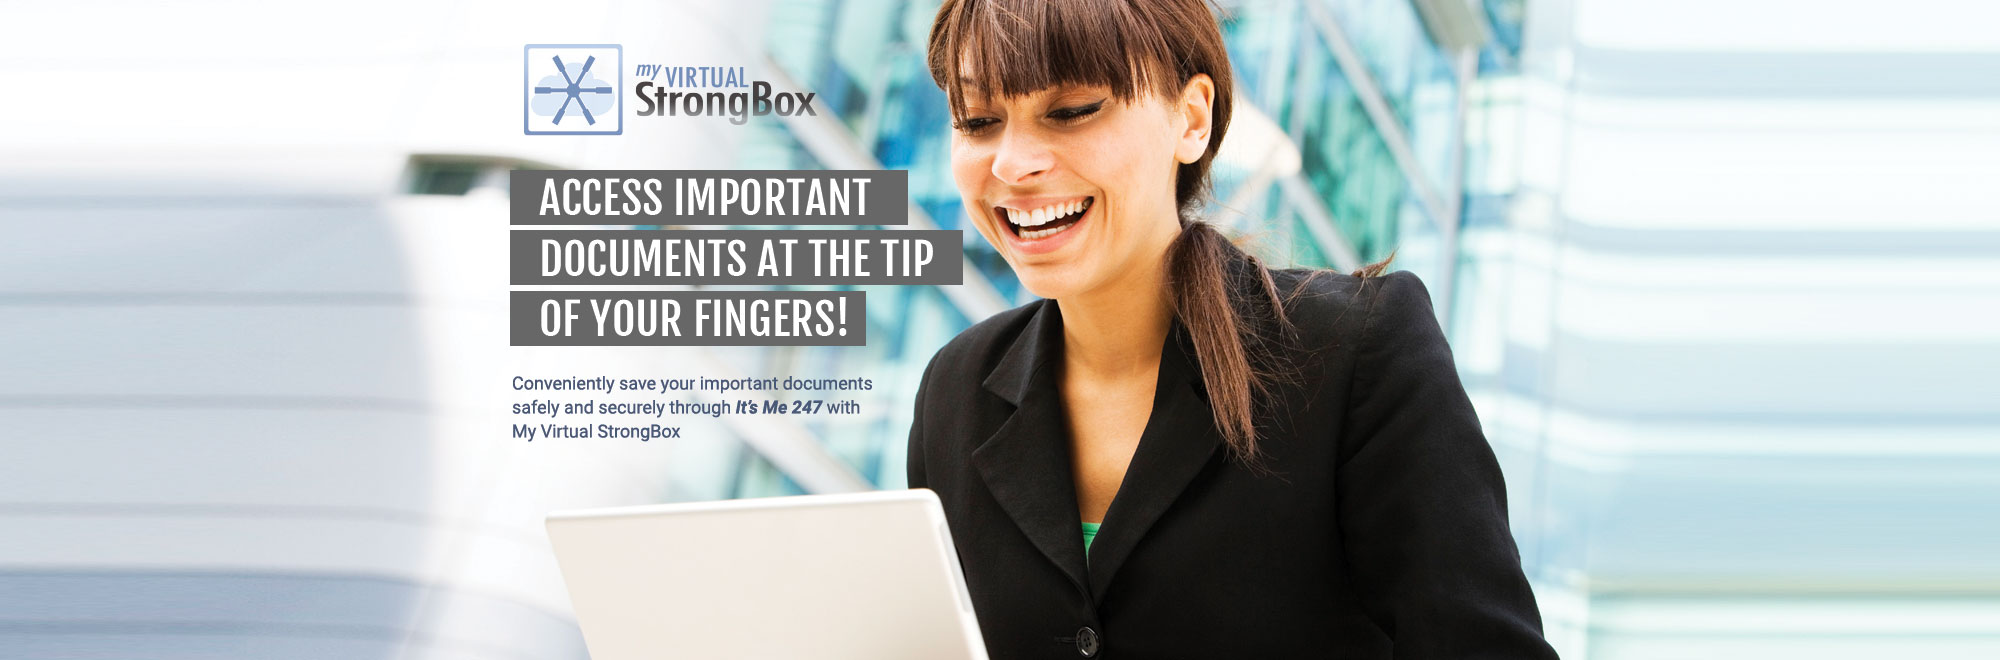 Conveniently save and access important documents through It's Me 24 with Virtual Strongbox